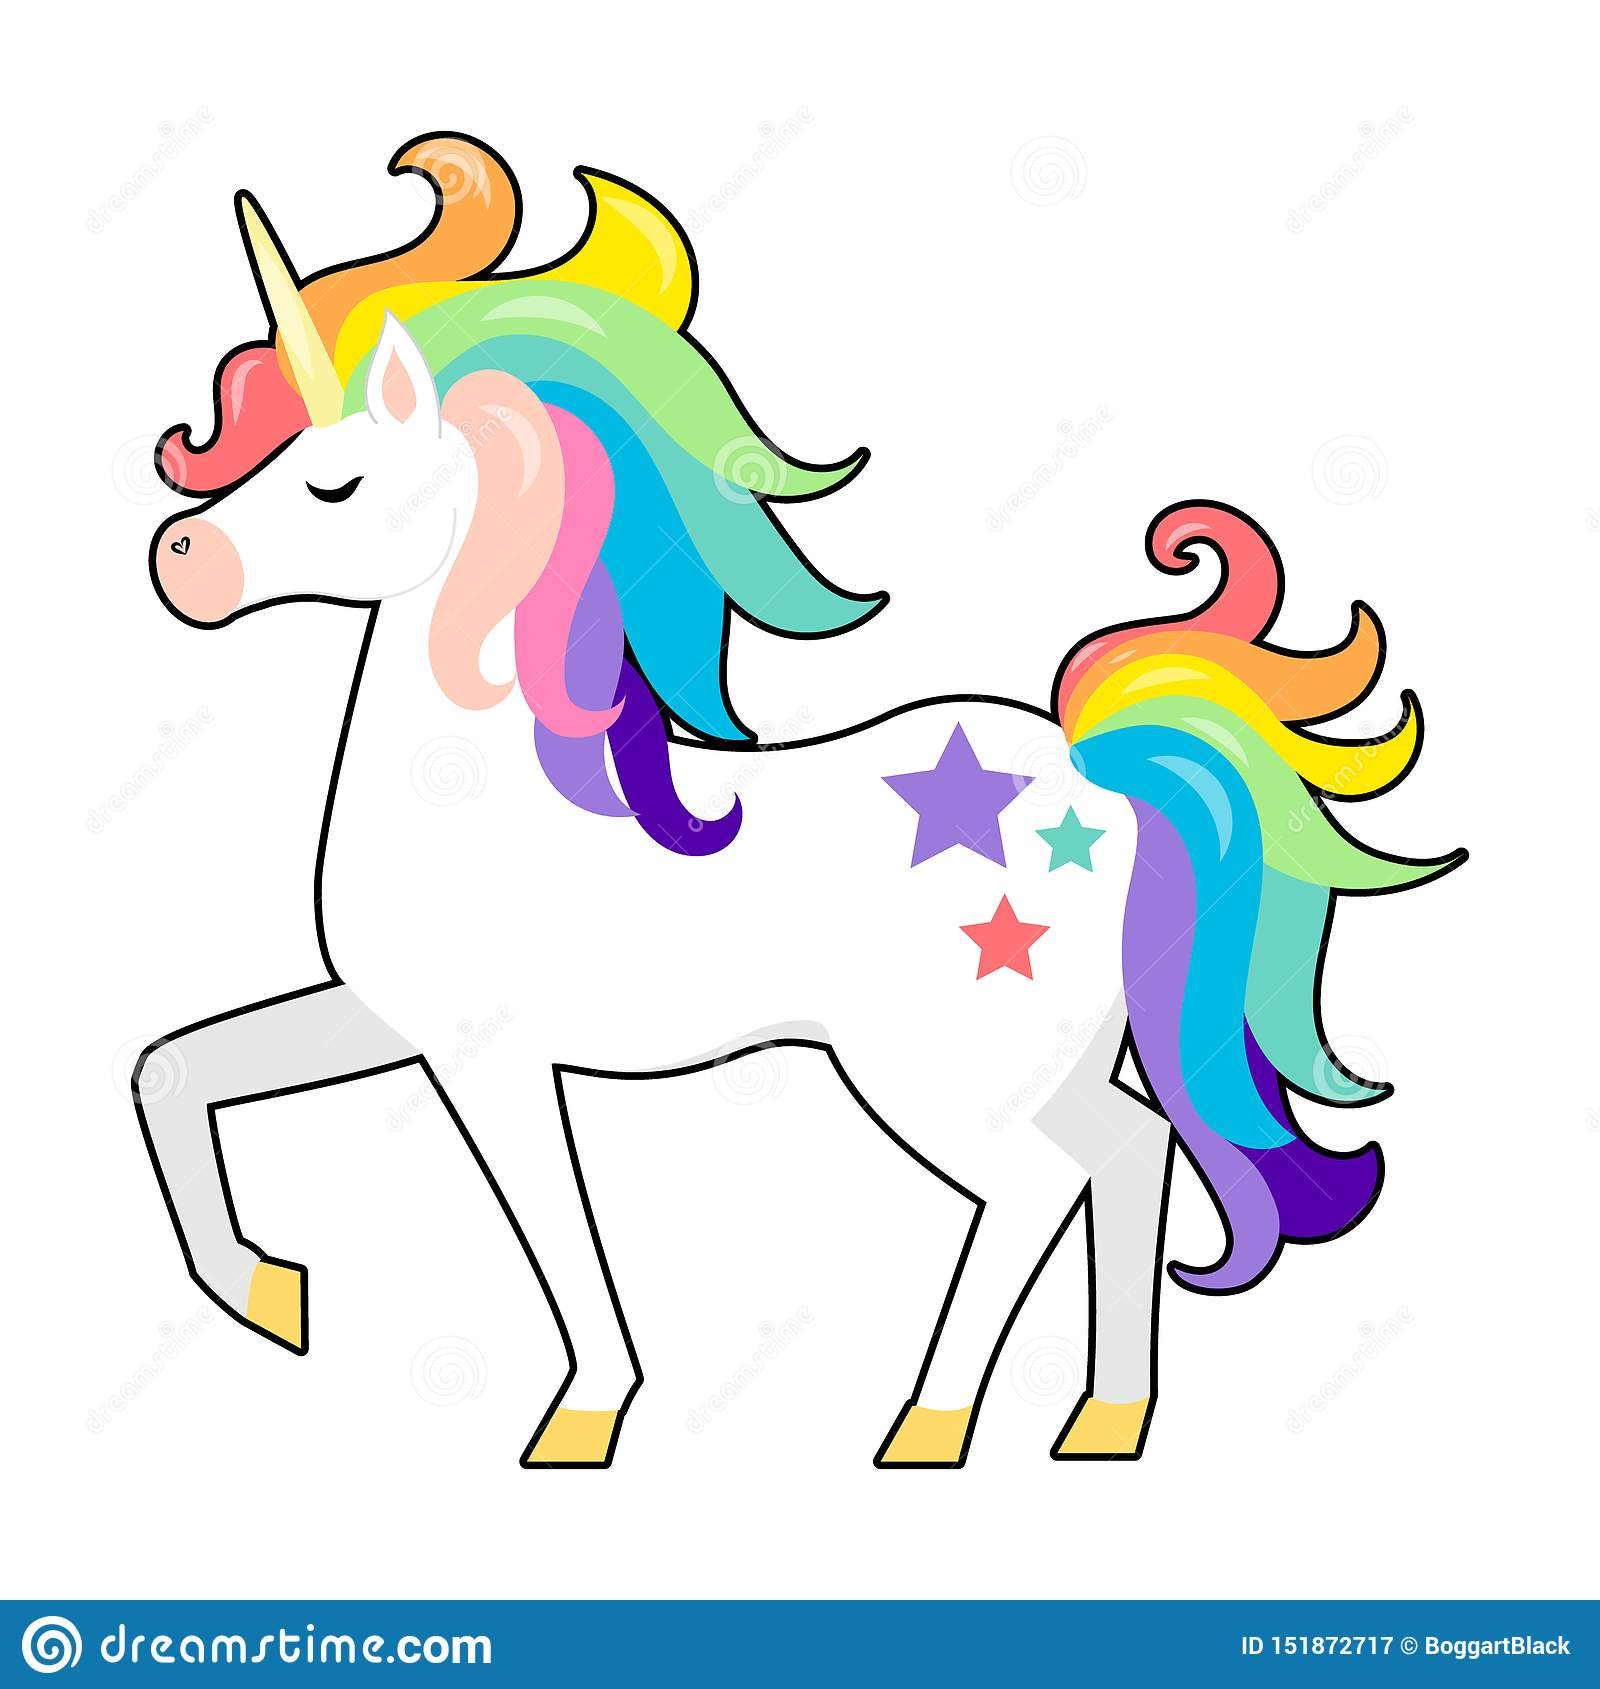 Cute Unicorn With Rainbow Hair Vector Cartoon Character Illustration Design For Child Card T Shirt Girls Kid Design Stock Vector Illustration Of Happy Funny 151872717